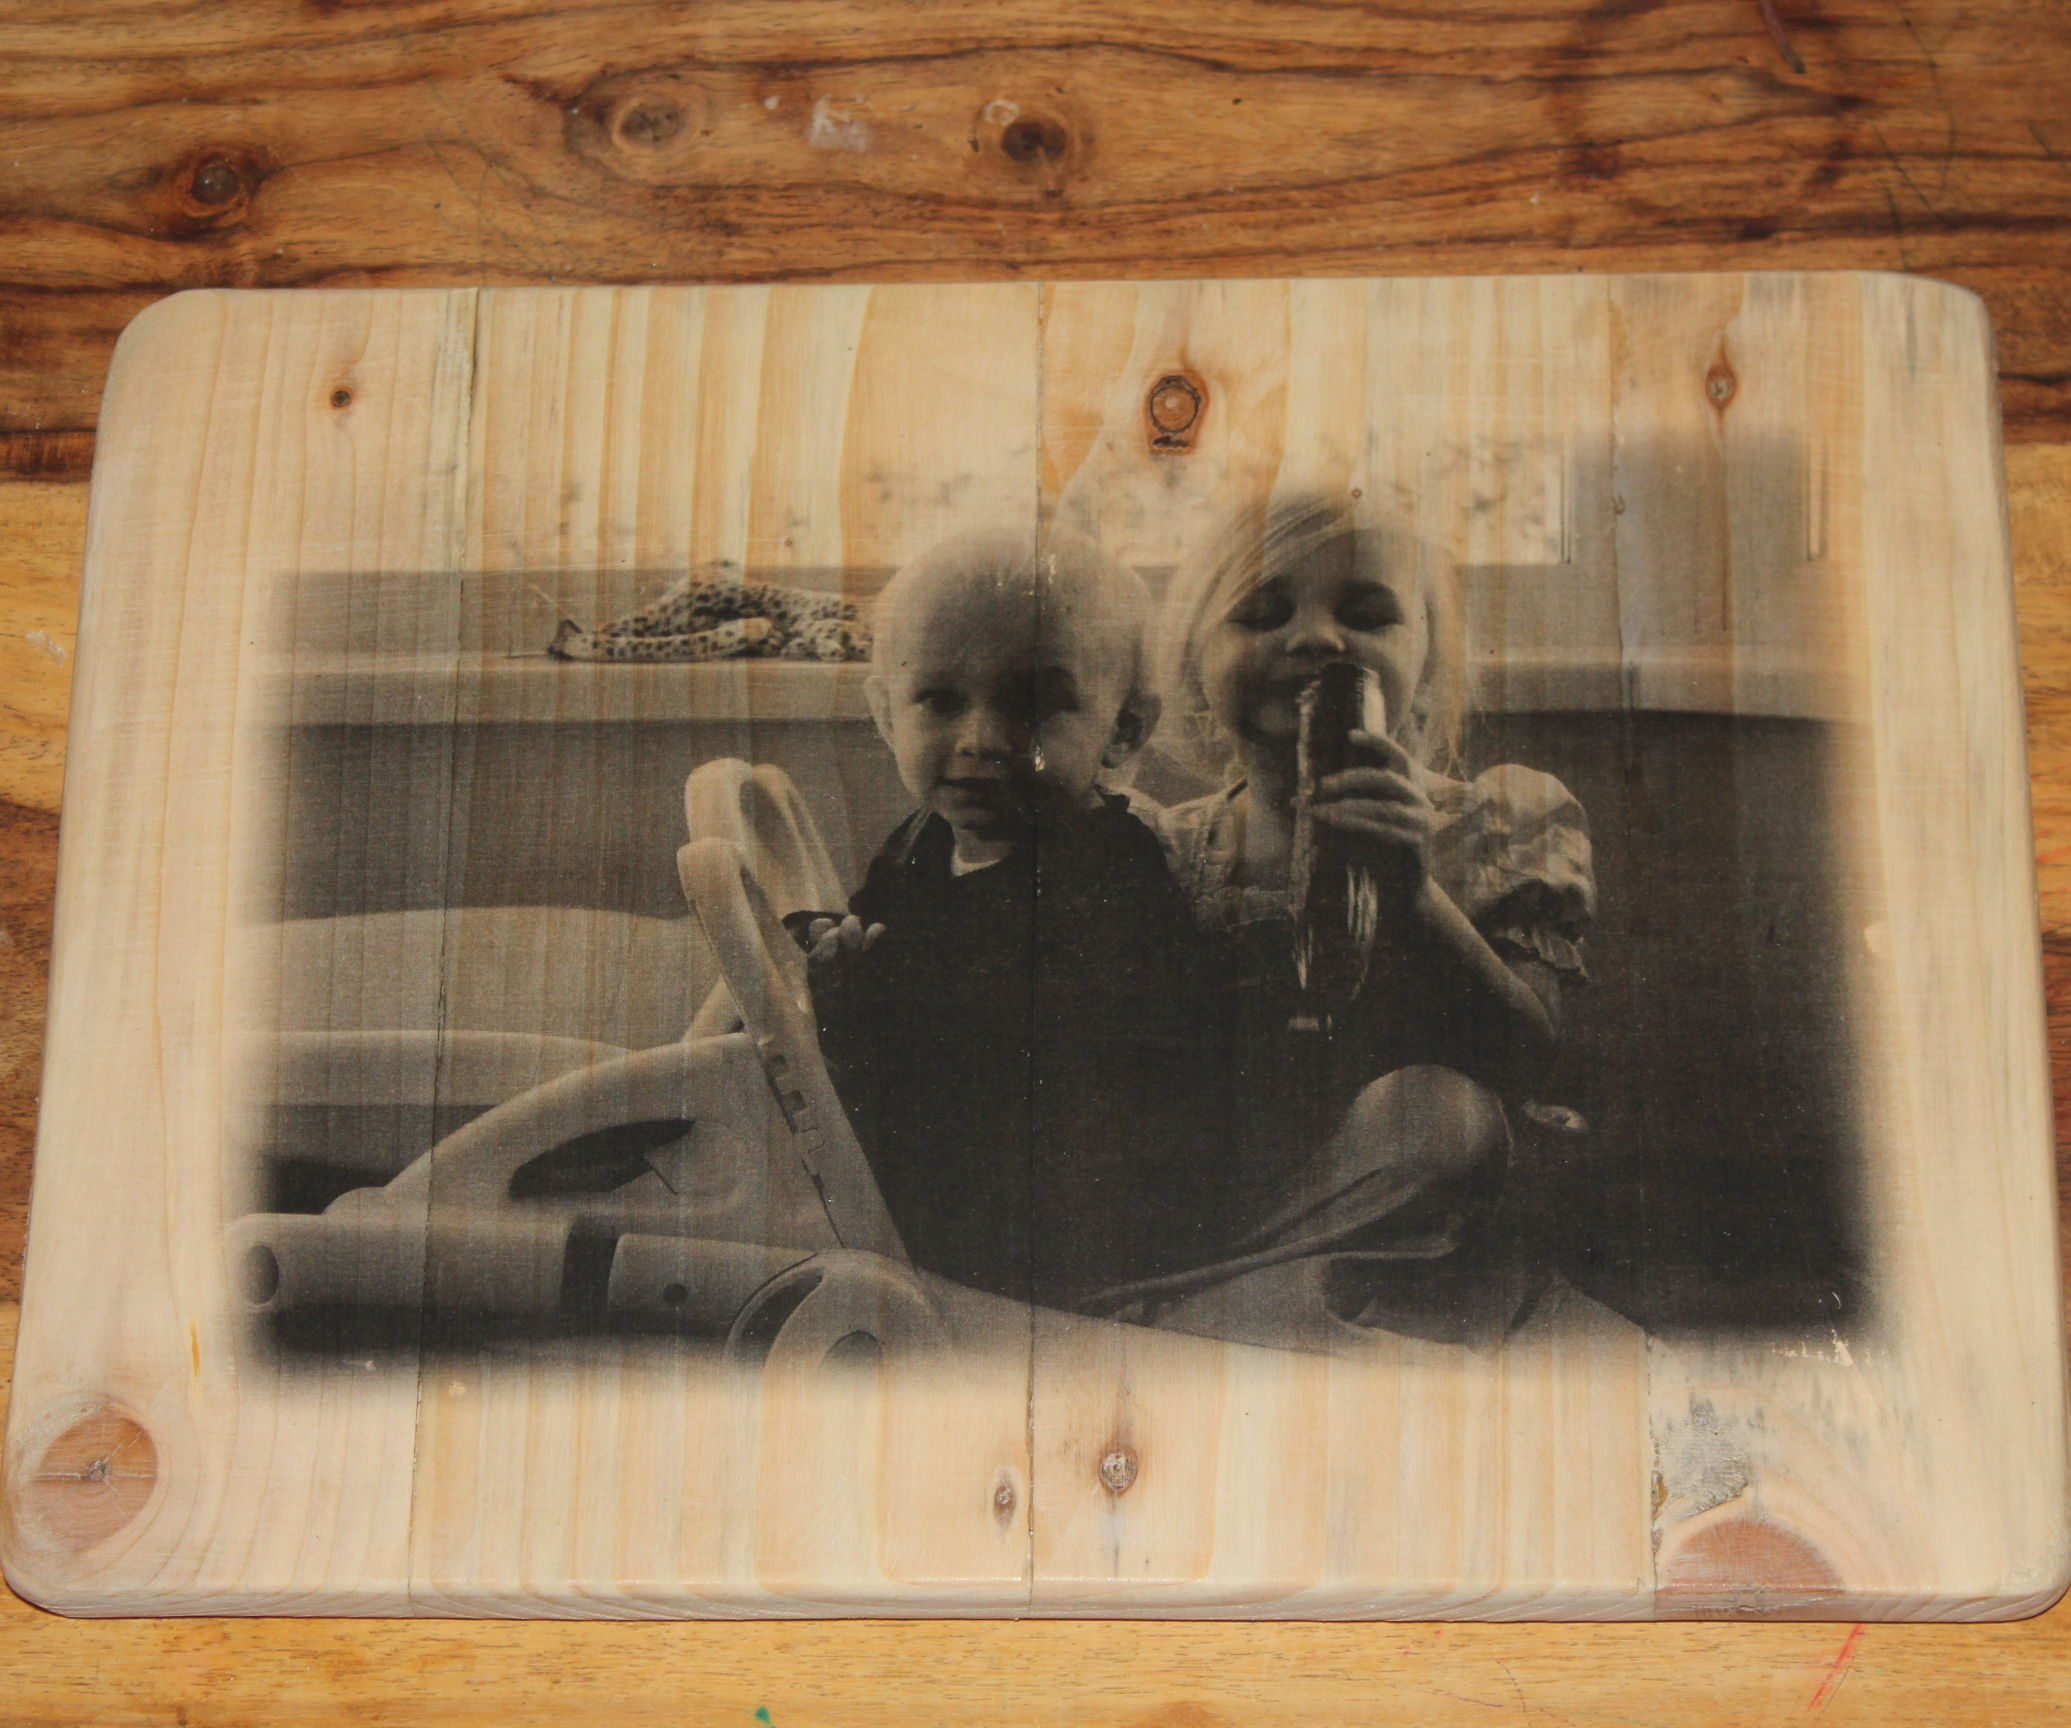 Transfer Photograph onto Wood